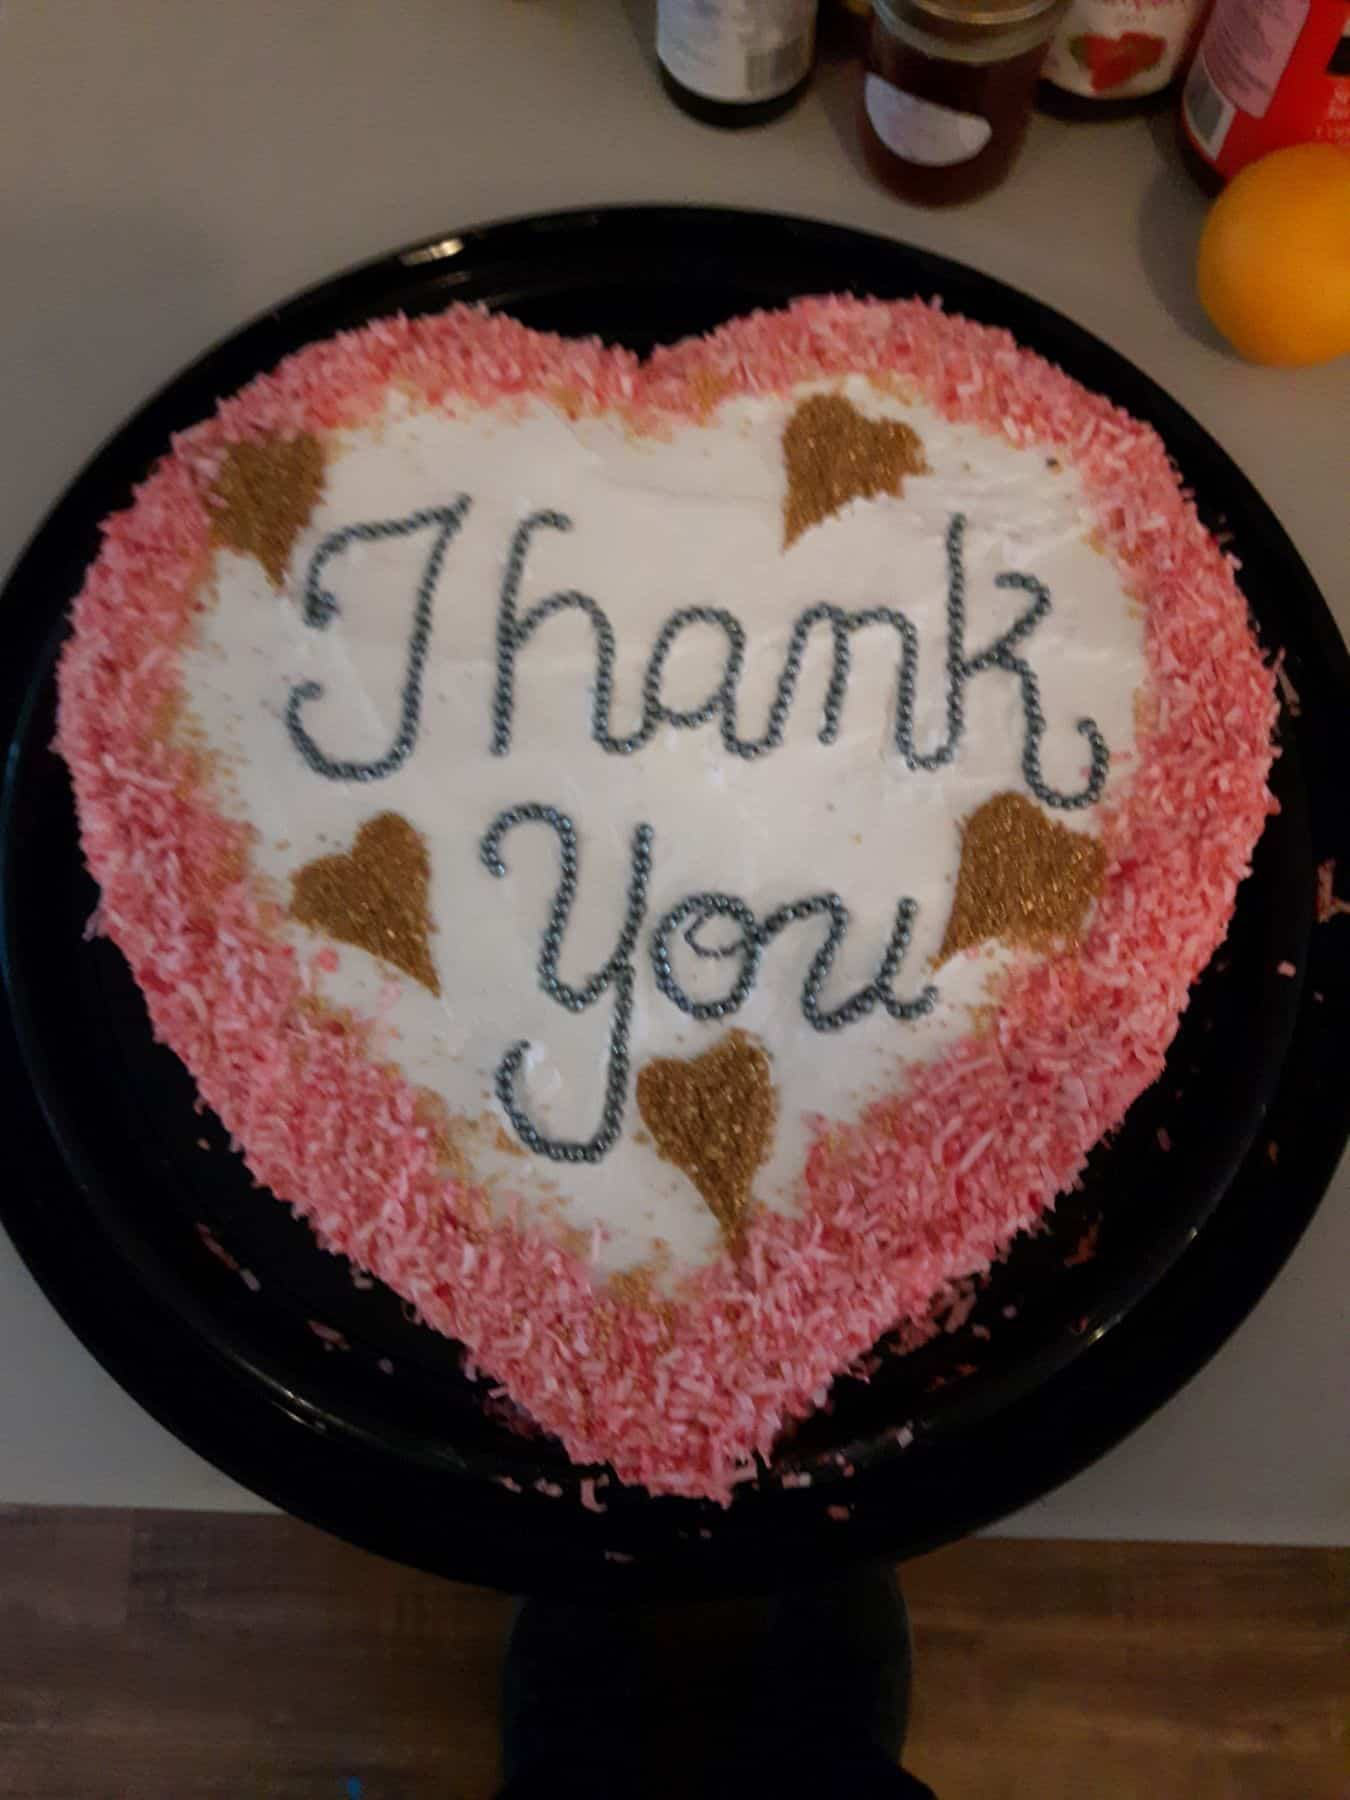 Gaylene baked this cake to thank the Samaritan's Purse volunteers and Billy Graham chaplains the night before they left for home.